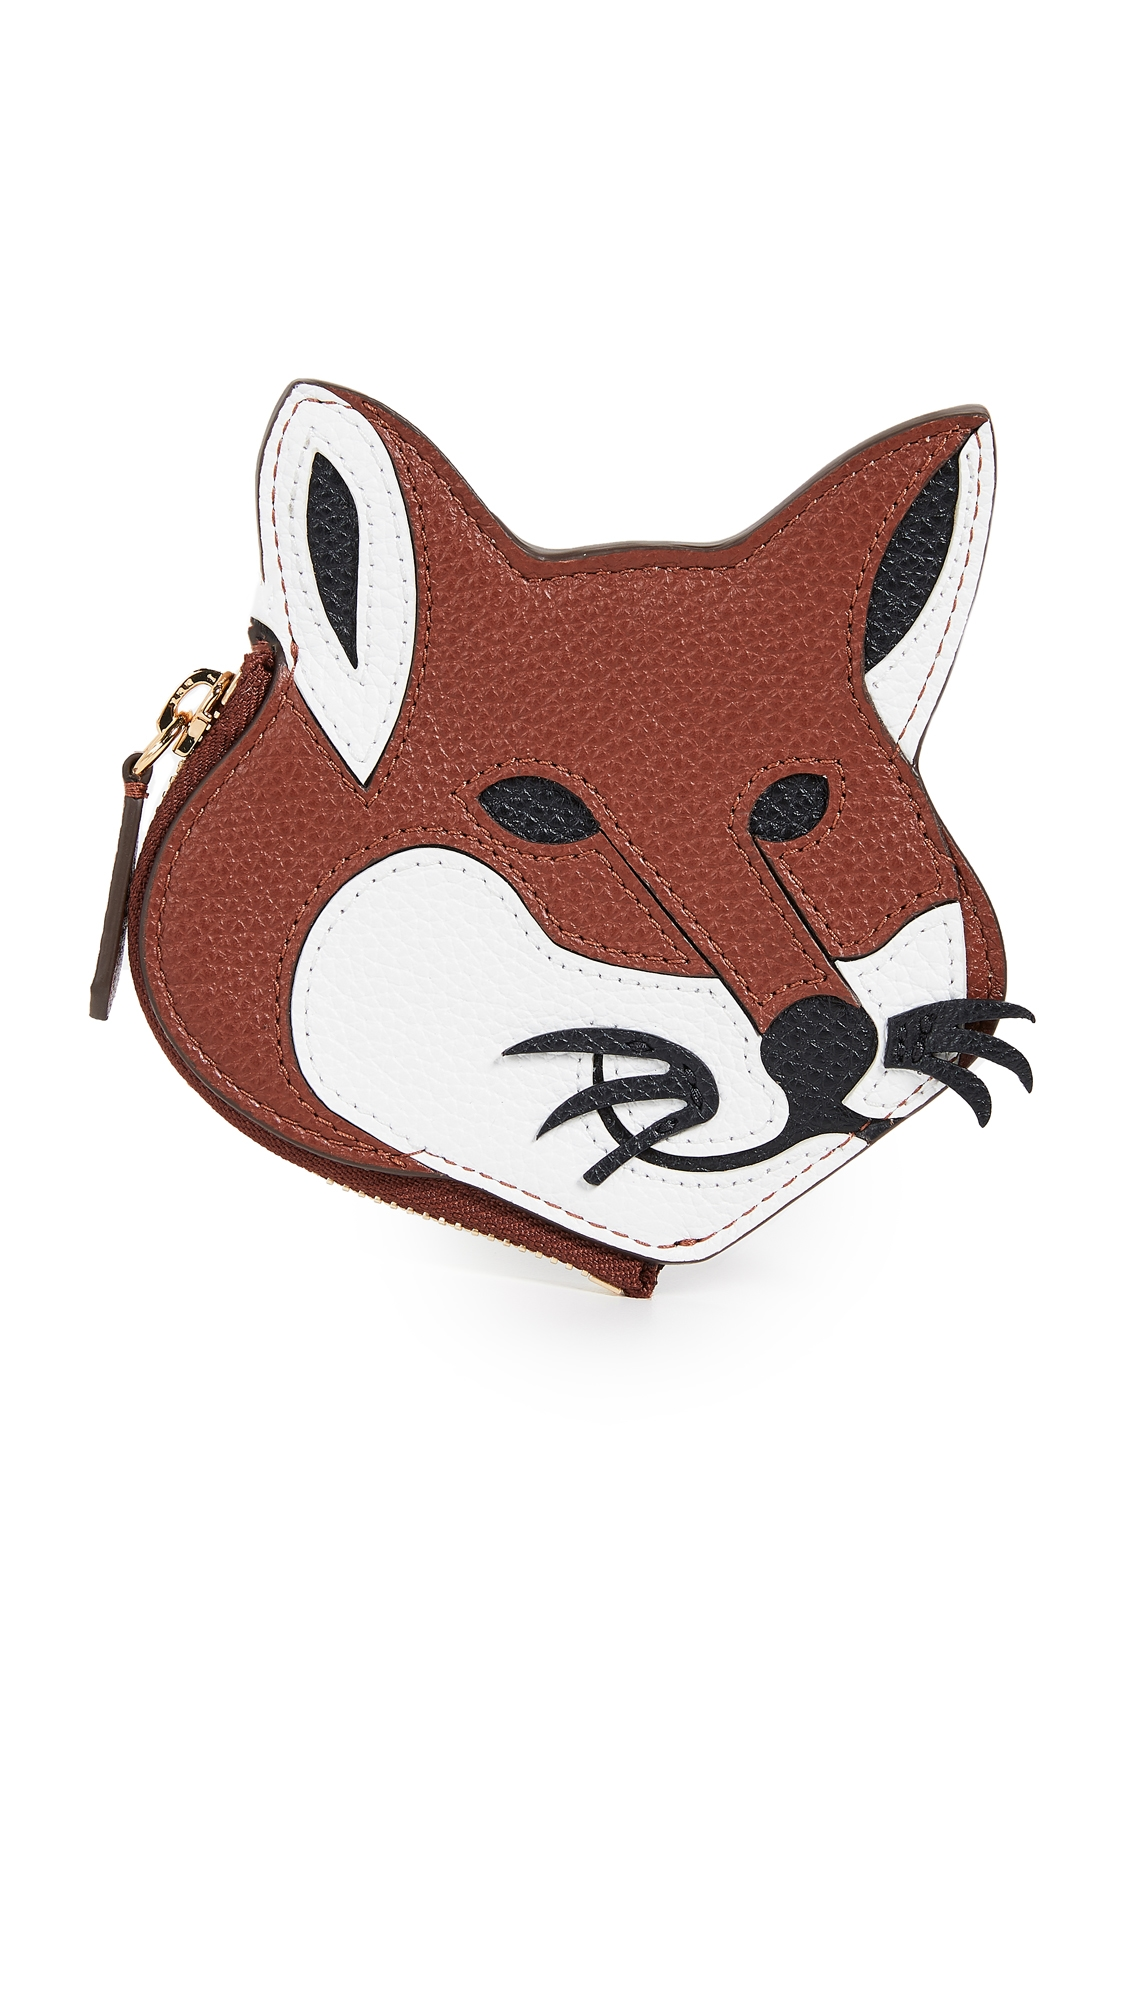 Maison Kitsuné Accessories FOX HEAD COIN PURSE